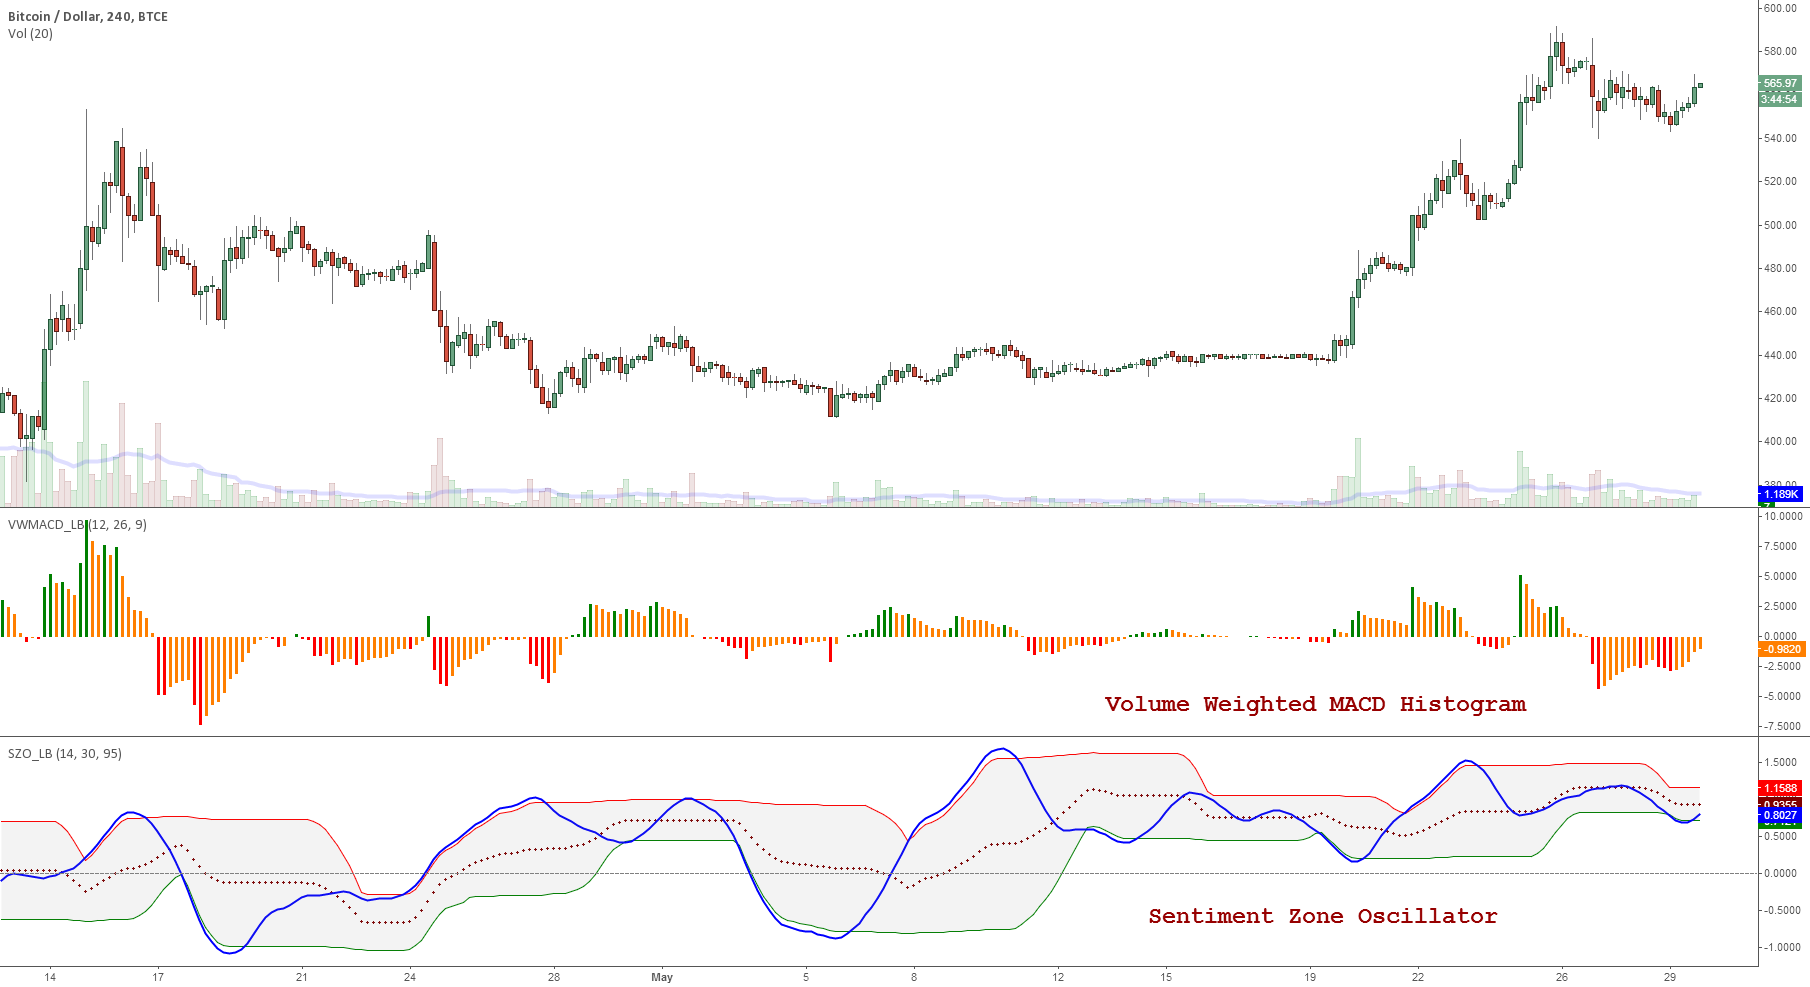 Indicators: Volume-Weighted MACD Histogram & Sentiment Zone Osc